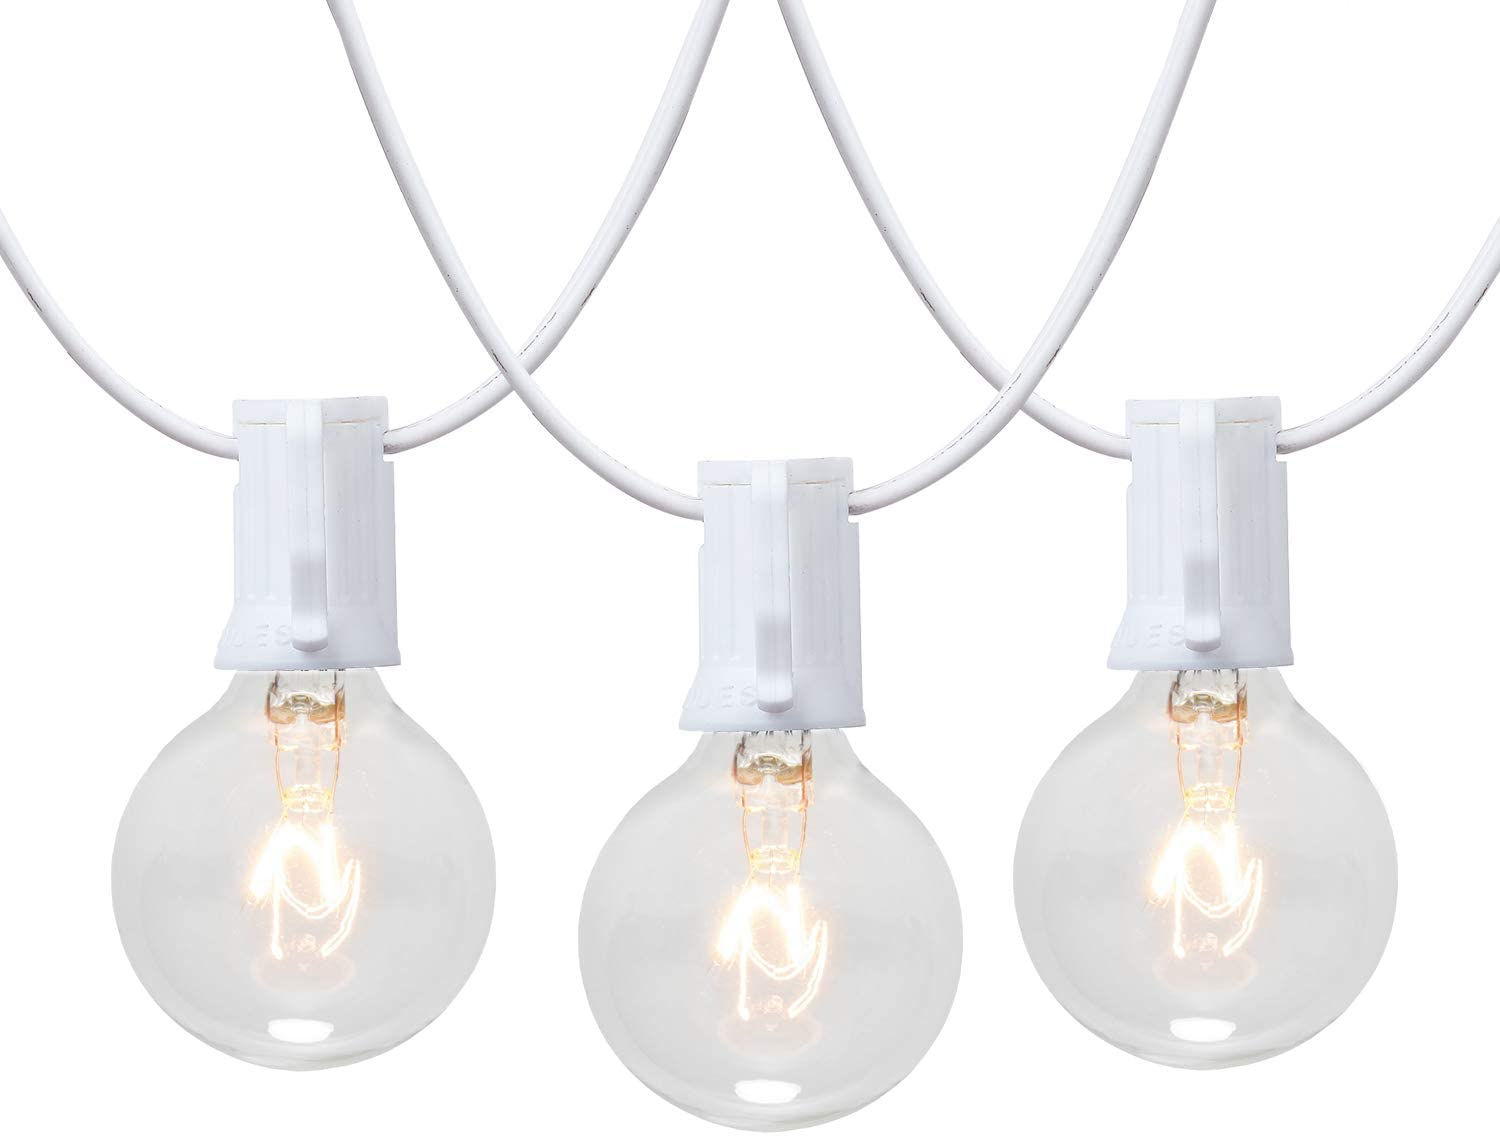 50ft White Wire Outdoor Hanging String Lights with 50 Clear Globe G40 Bulbs,UL Certified Indoor/Outdoor for Patio Home Bistro Party Tent Cafe Deck Pergola